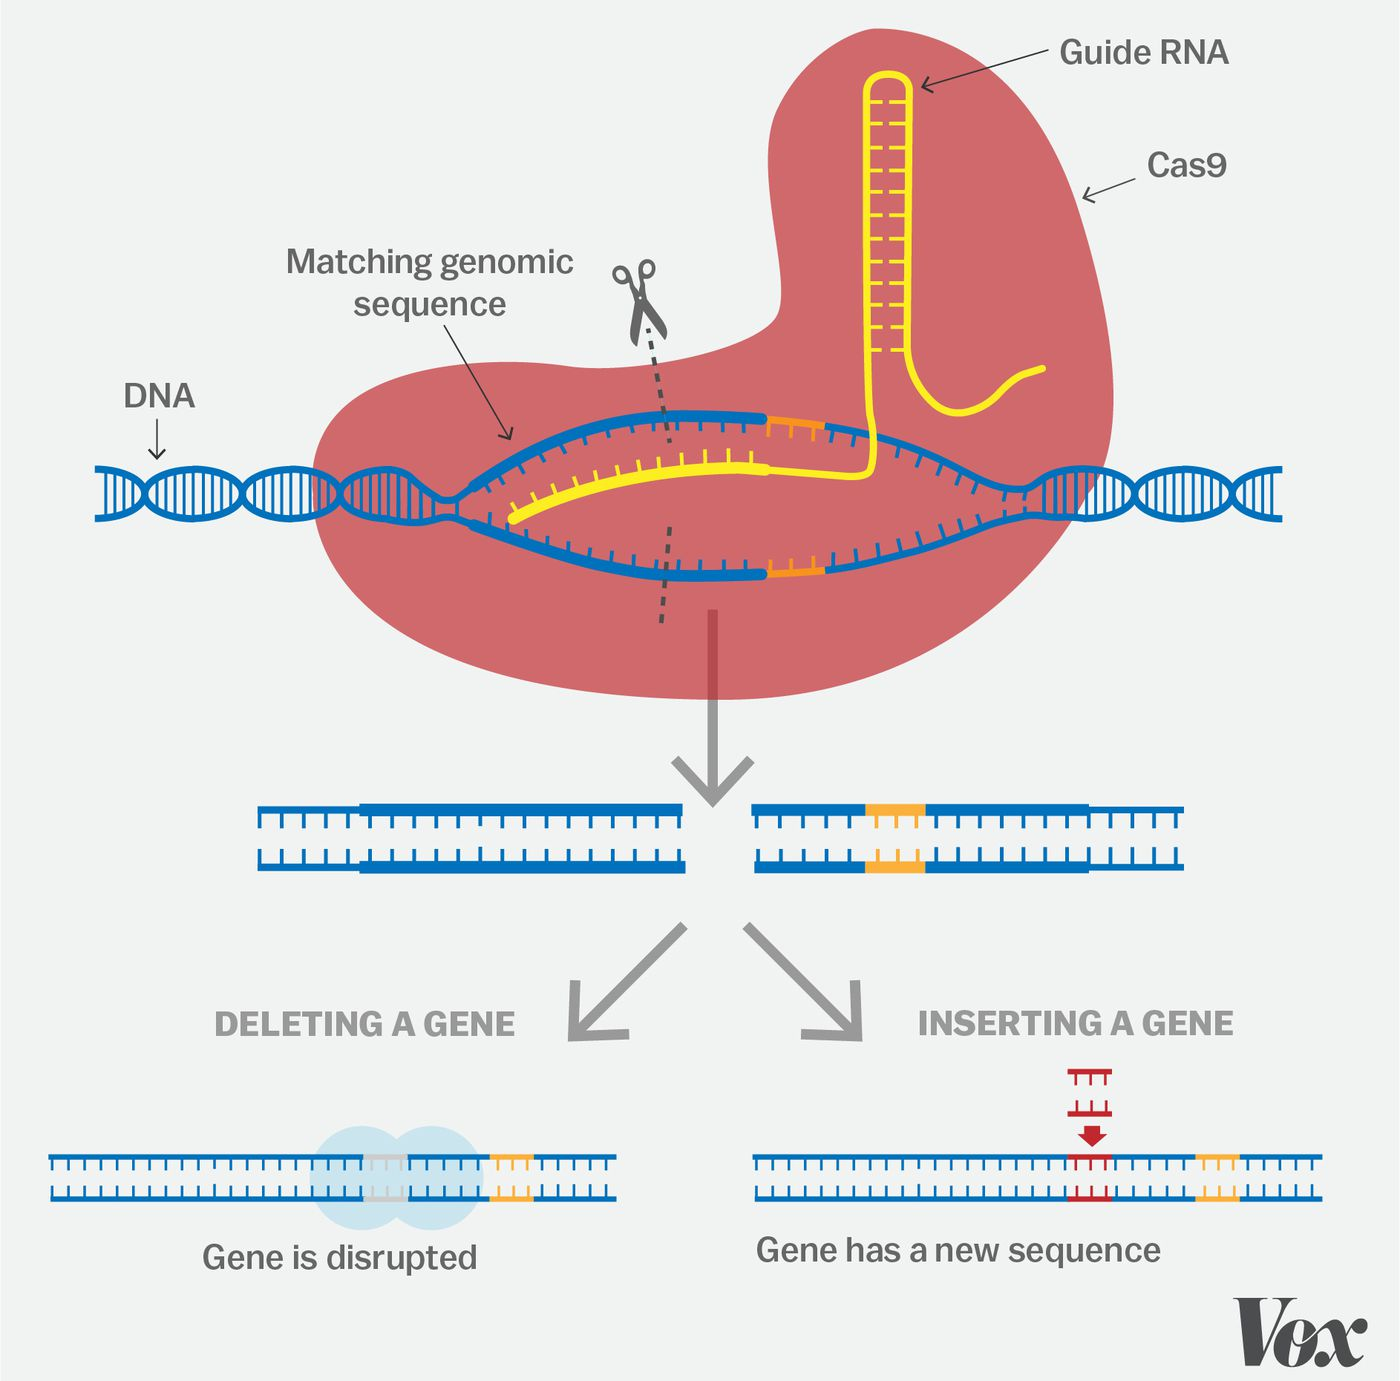 CRISPR, one of the biggest science stories of the decade